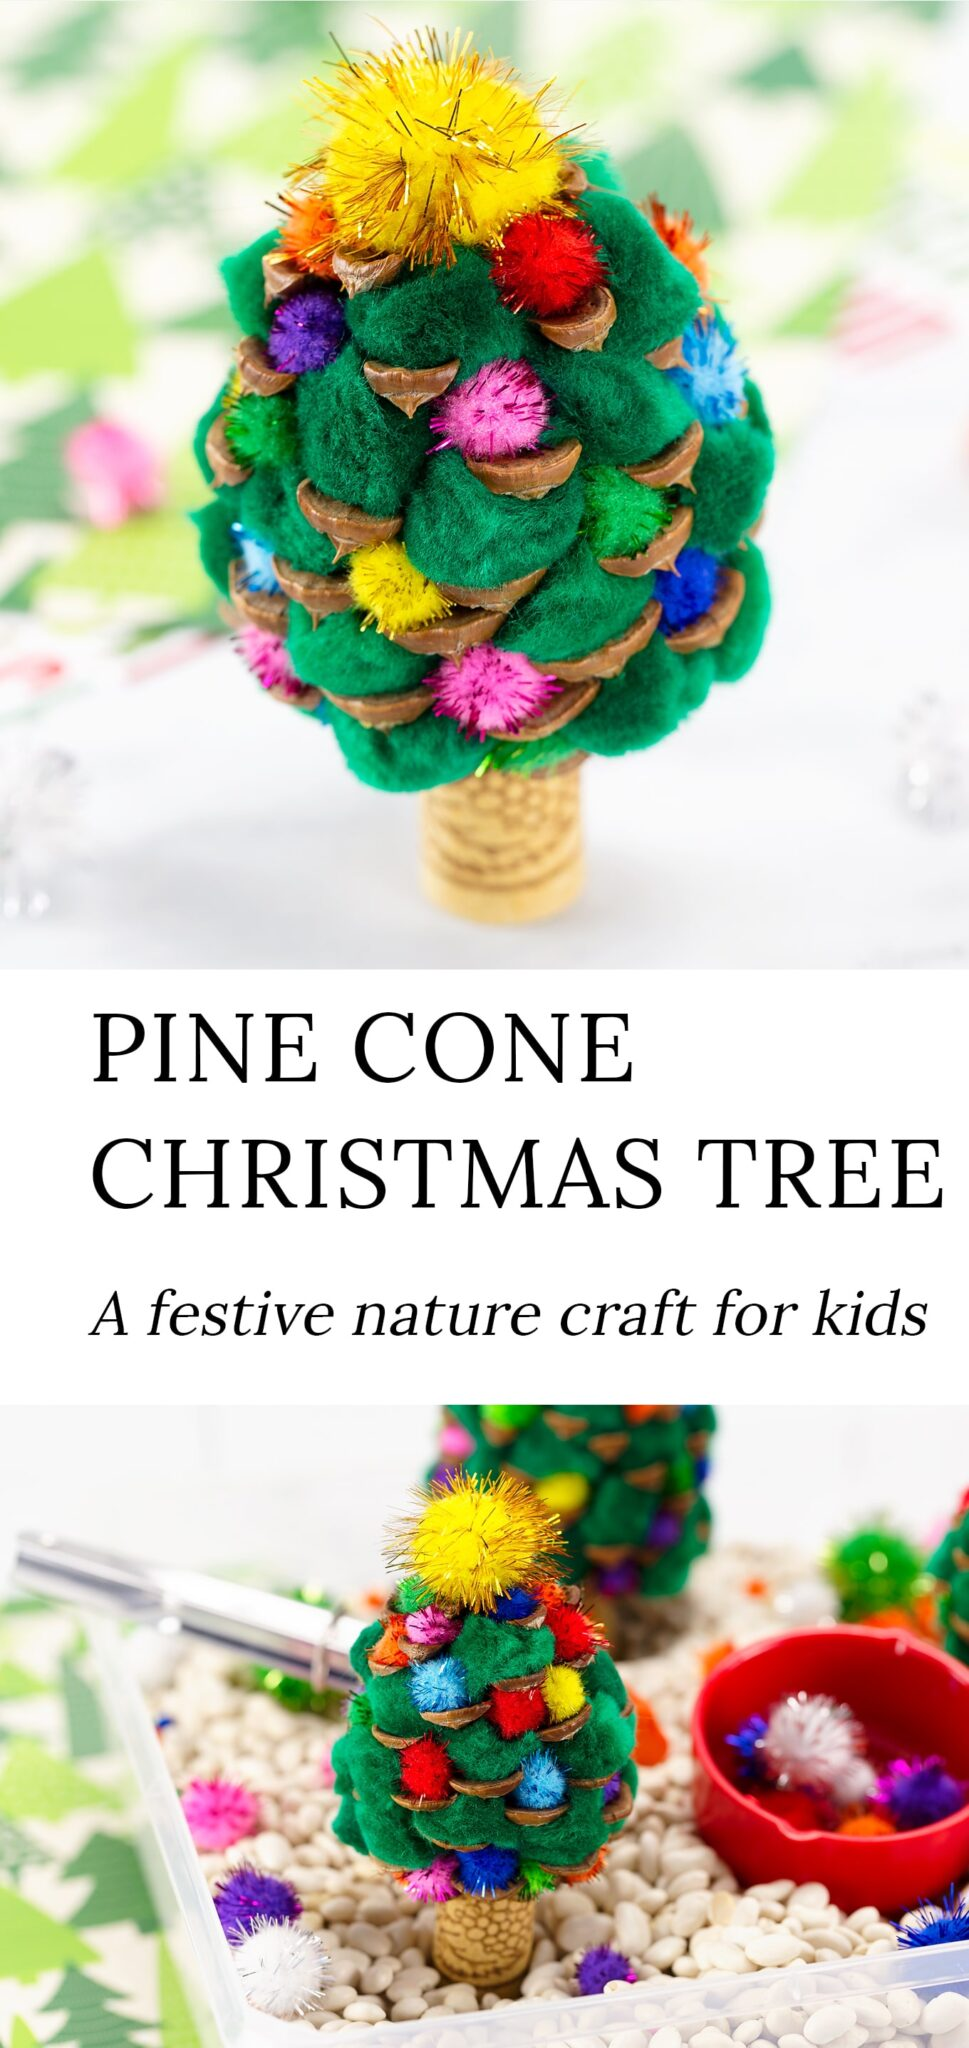 This festive DIY Pine Cone Christmas Tree craft is an easy and fun nature craft for kids of all ages! Perfect for sensory play at home and in the classroom. #pineconechristmastree #kidscrafts #naturecrafts via @firefliesandmudpies